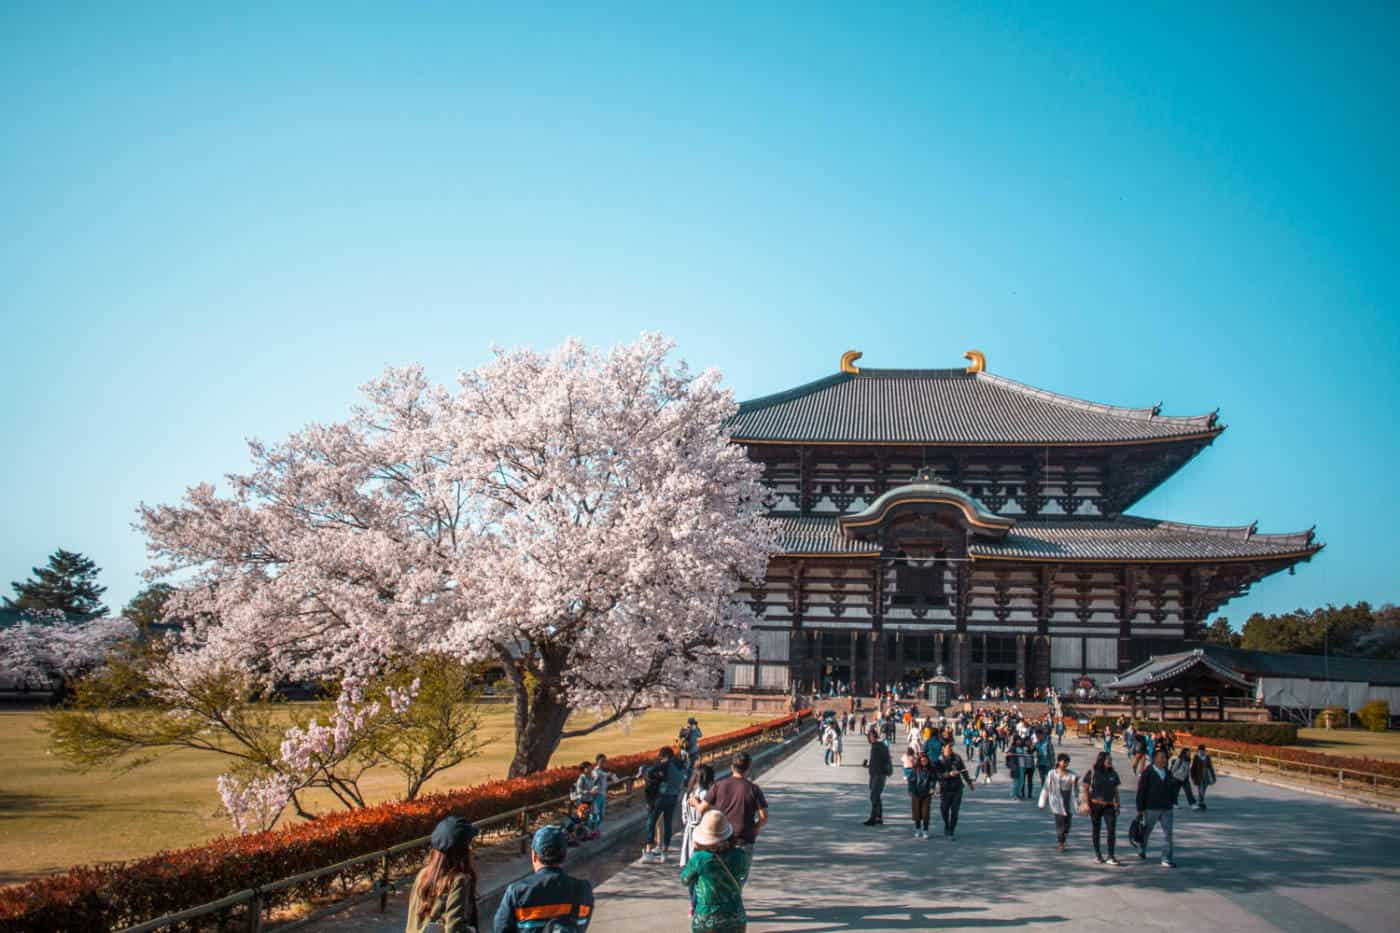 Day trips from Tokyo to Nara with the JR Japan Rail pass